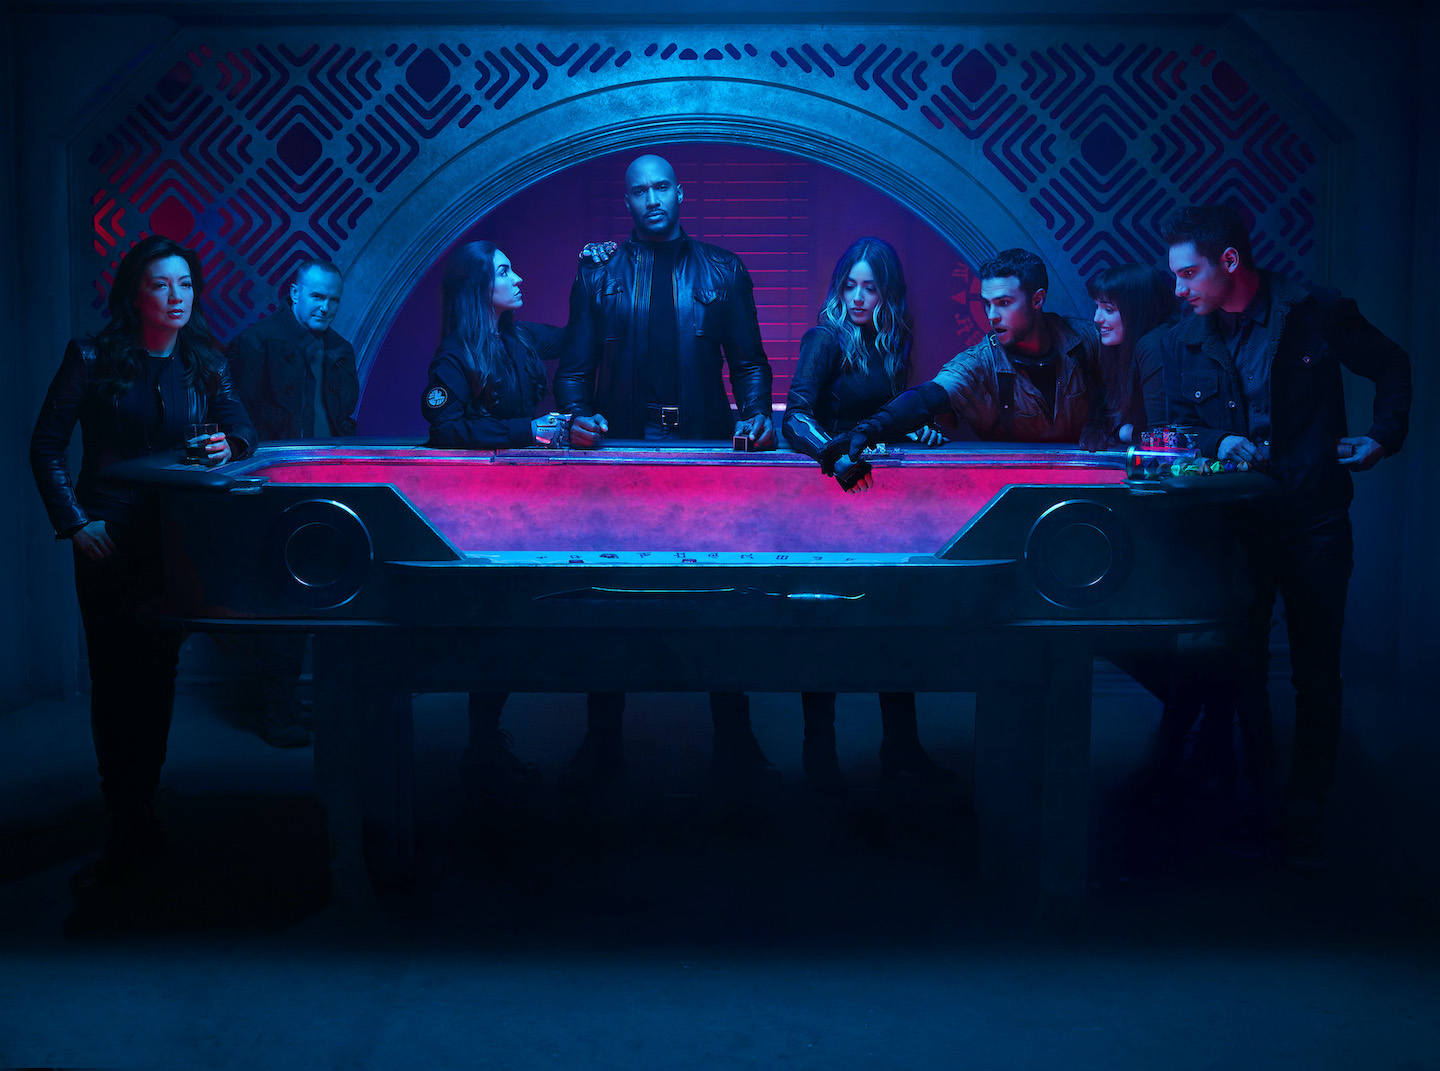 `Marvel's Agents of S.H.I.E.L.D.` - ABC's `Marvel's Agents of S.H.I.E.L.D.` stars Ming-Na Wen as Agent Melinda May, Clark Gregg as Agent Phil Coulson, Natalia Cordova-Buckley as Elena `Yo-Yo` Rodriguez, Henry Simmons as Director Alphonso `Mack` MacKenzie, Chloe Bennet as Daisy Johnson, Iain De Caestecker as Agent Leo Fitz, Elizabeth Henstridge as Agent Jemma Simmons, and Jeff Ward as Deke Shaw. (ABC photo by Matthias Clamer)